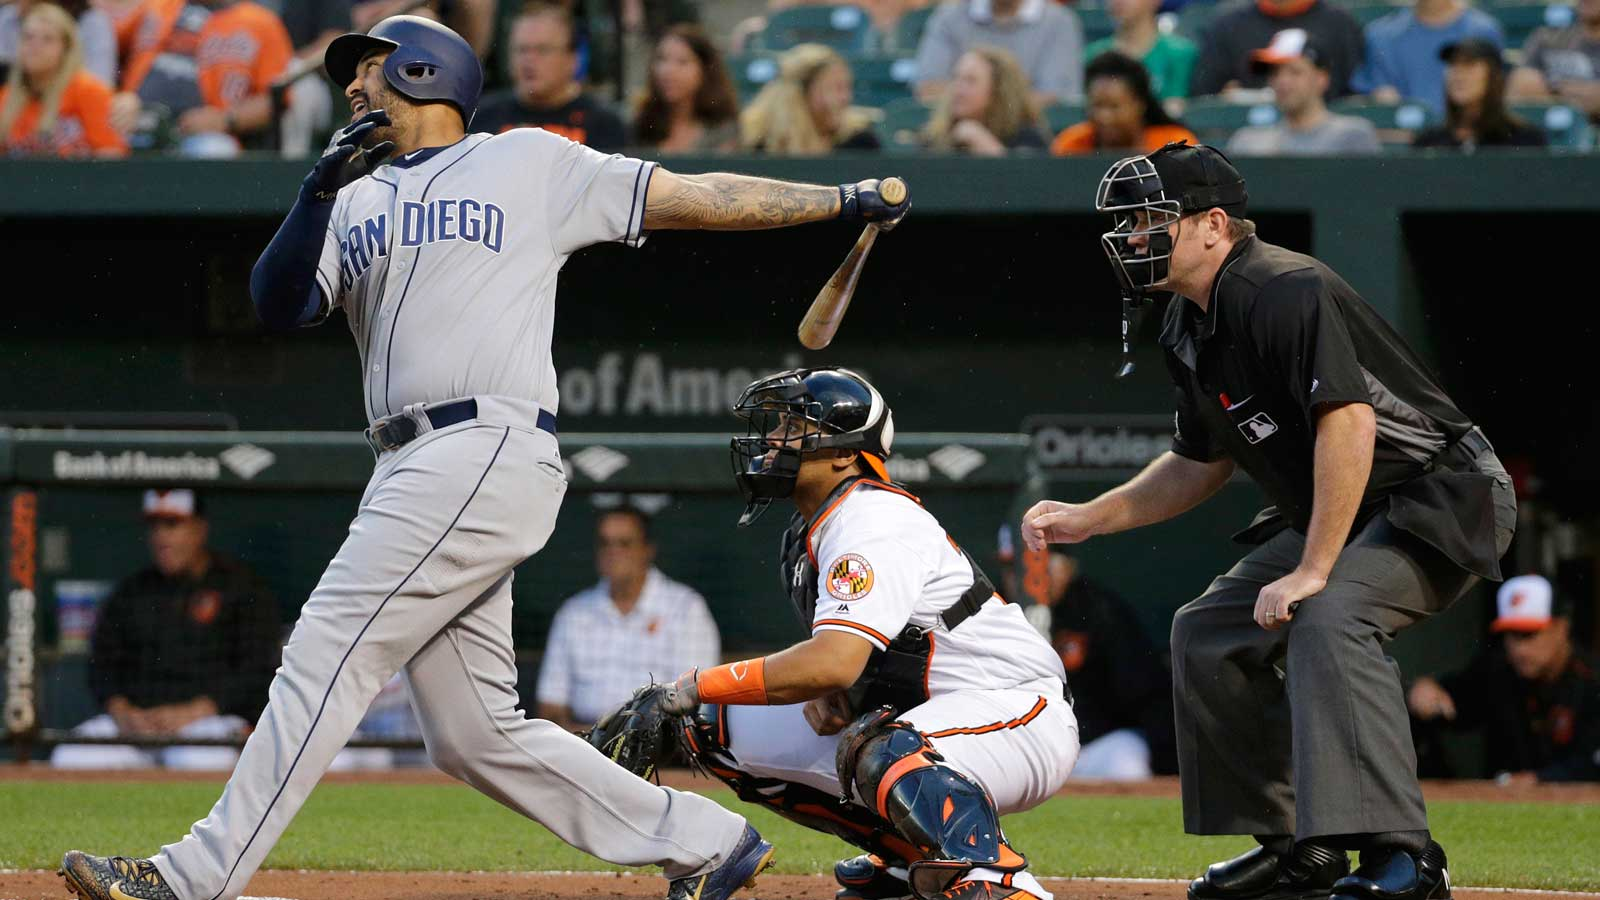 Kemp has 4 hits as Padres rally past Orioles 10-7